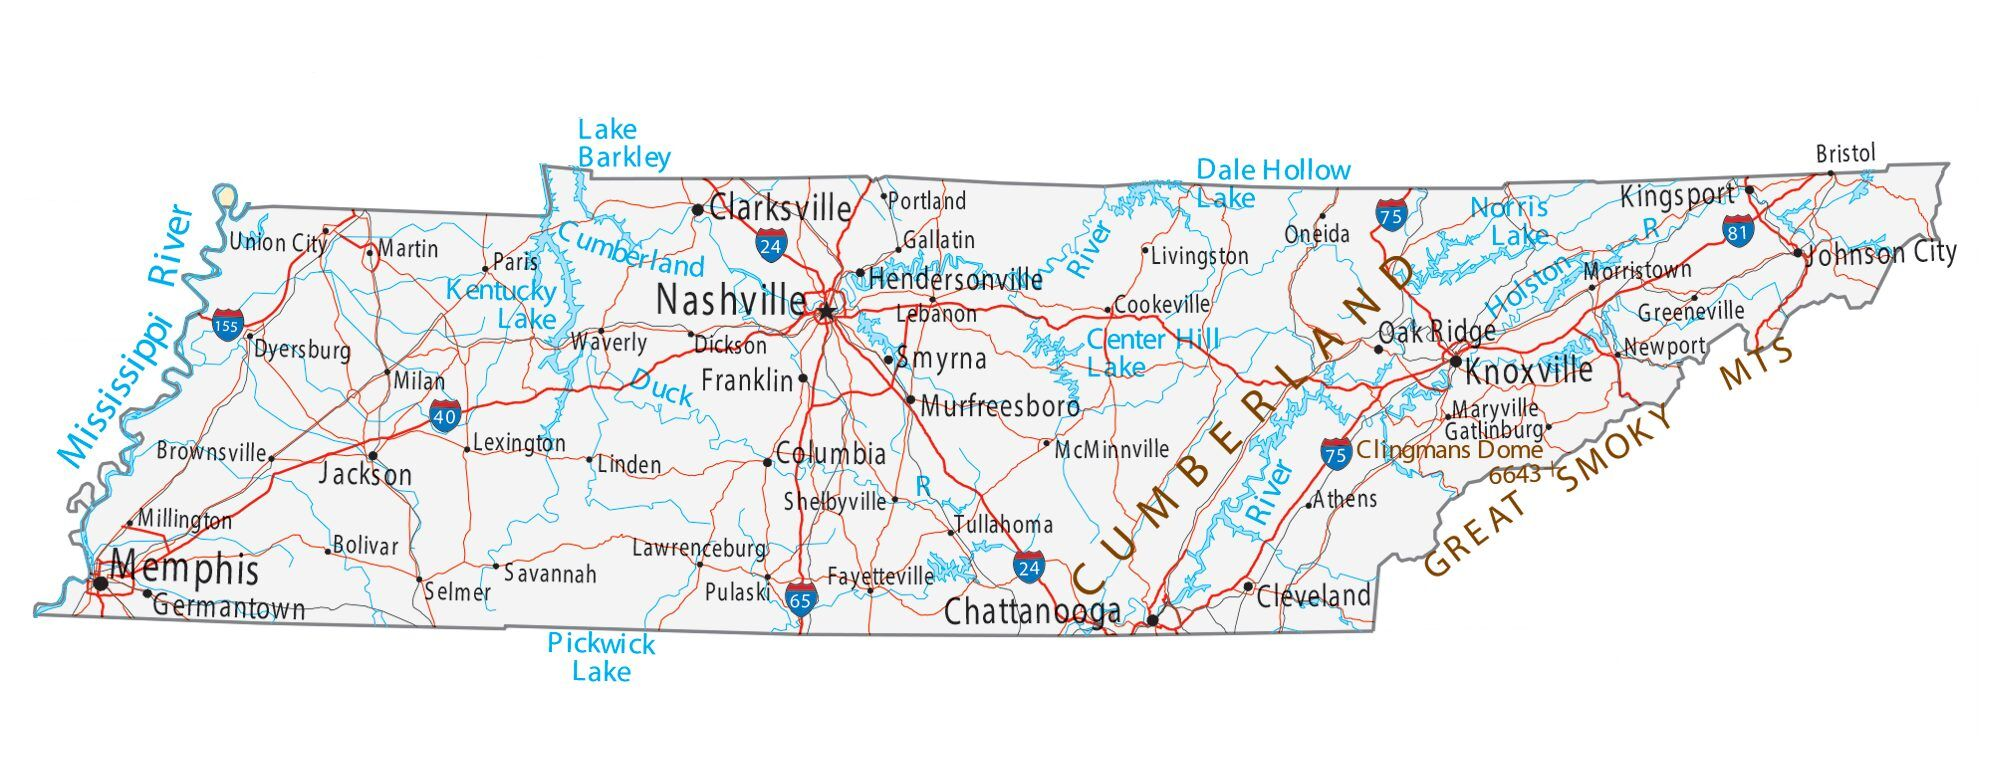 City maps for neighboring states:. Map Of Tennessee Cities And Roads Gis Geography